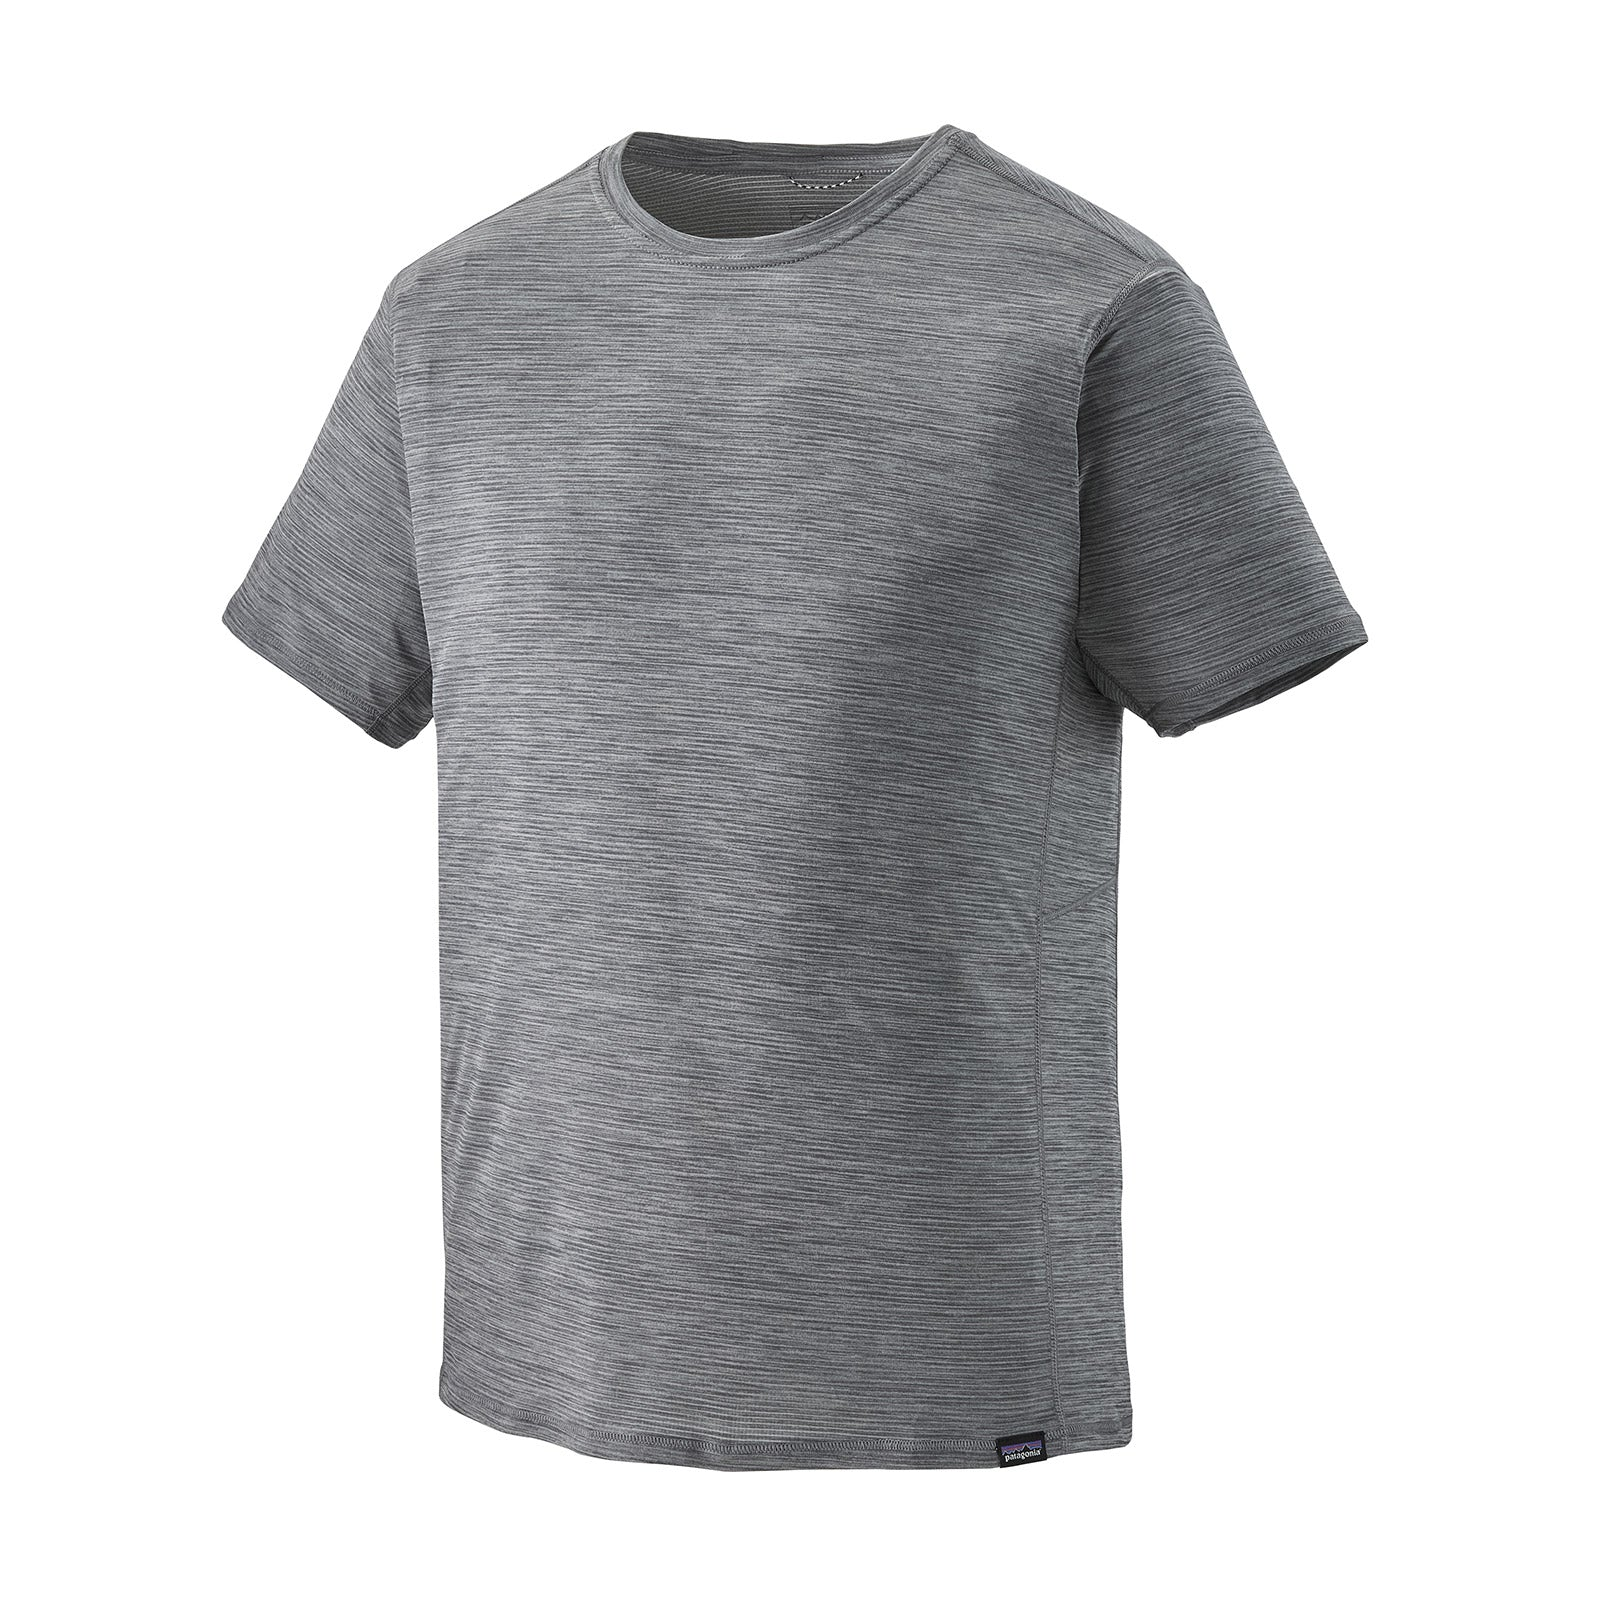 patagonia mens short sleeve capilene cool lightweight shirt in forge grey feather grey x dye, front view